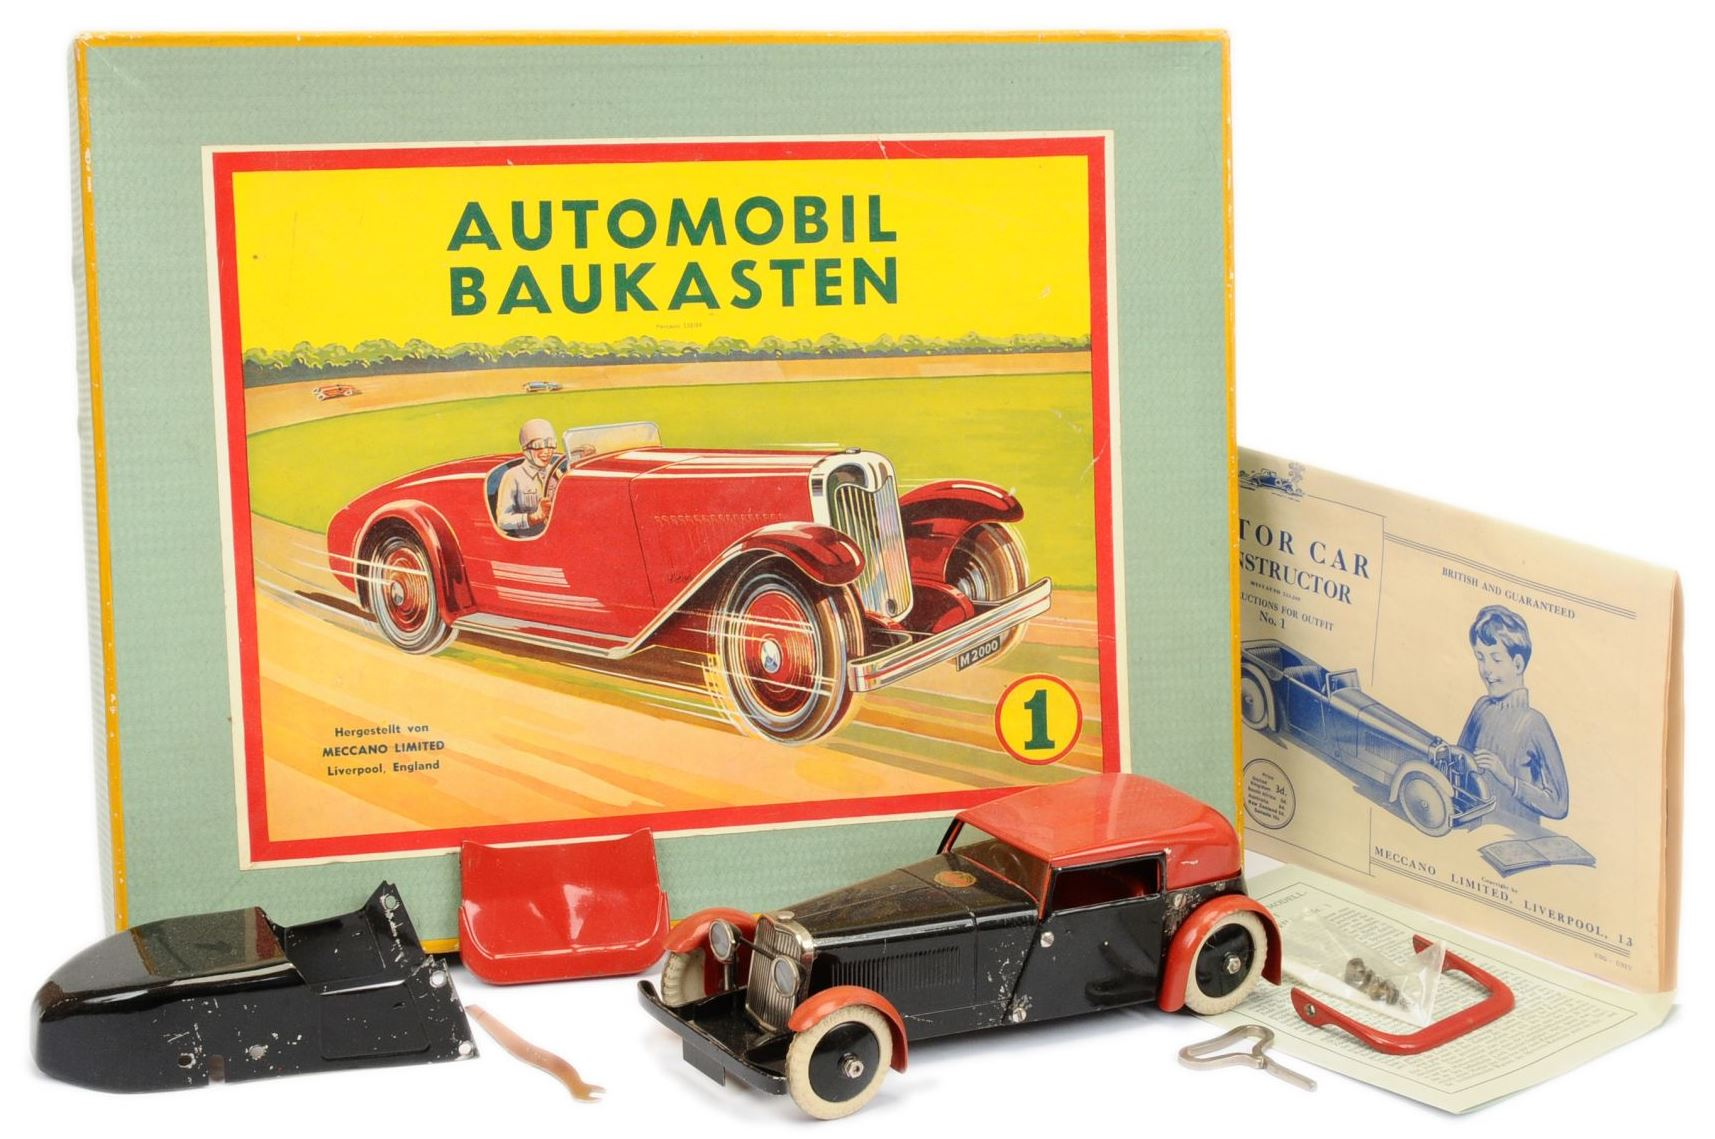 Meccano Constructor Car pre-war - made for the German market 15th January 2020 Lot 663